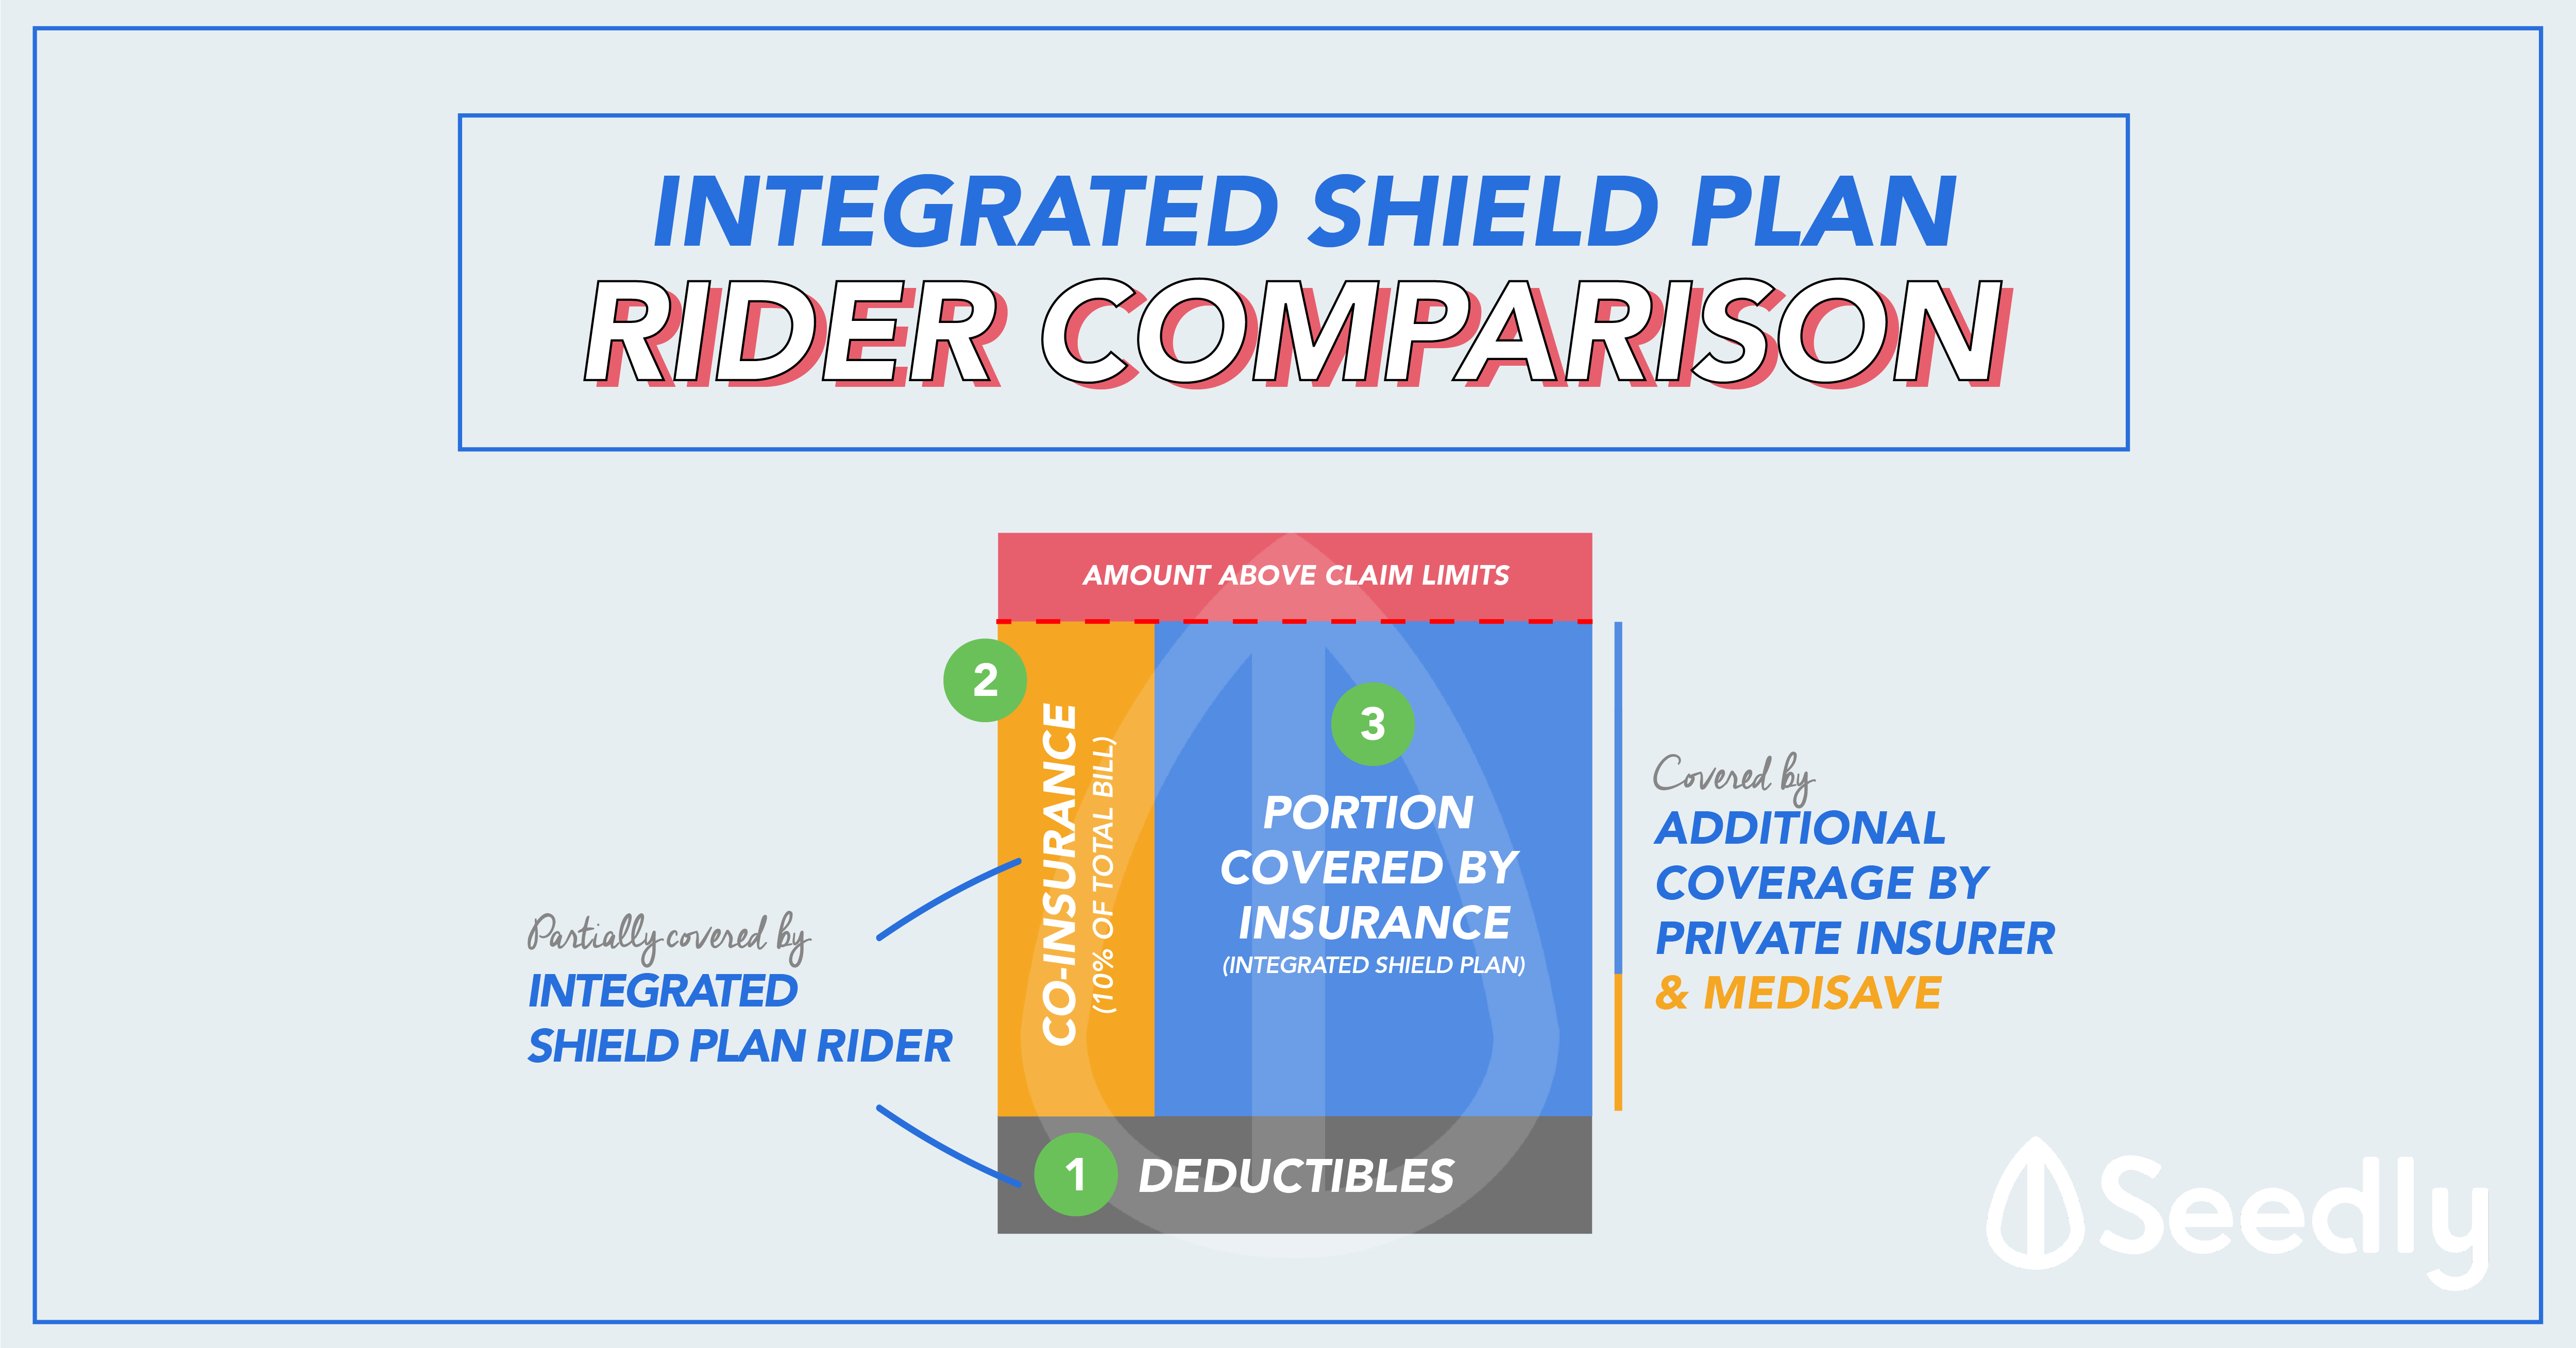 Integrated Shield Plan Rider Comparison